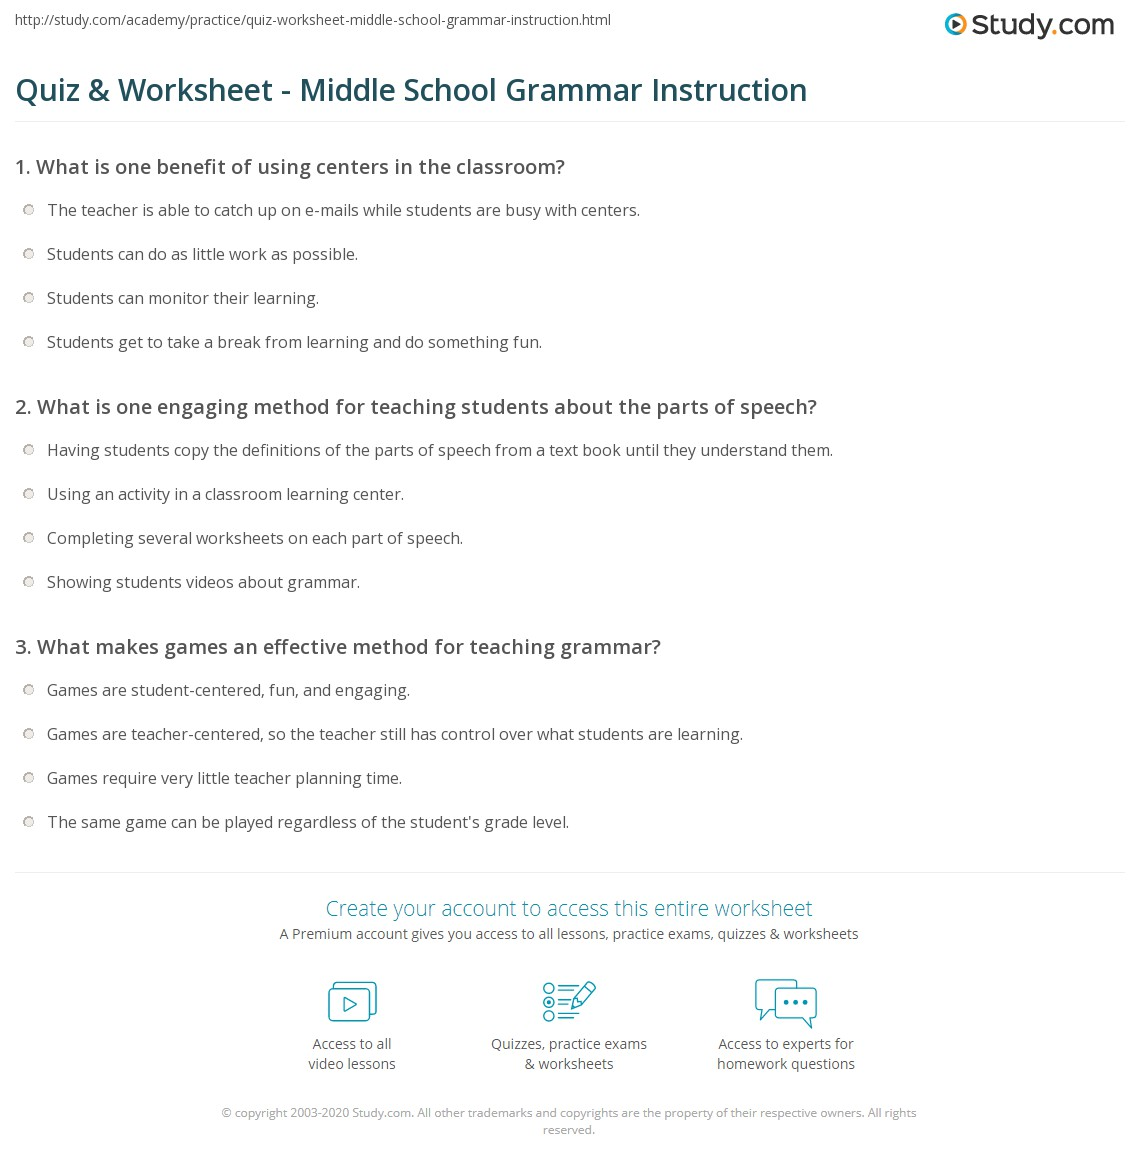 Worksheet Grammar Worksheets For Middle School quiz worksheet middle school grammar instruction study com print teaching in worksheet